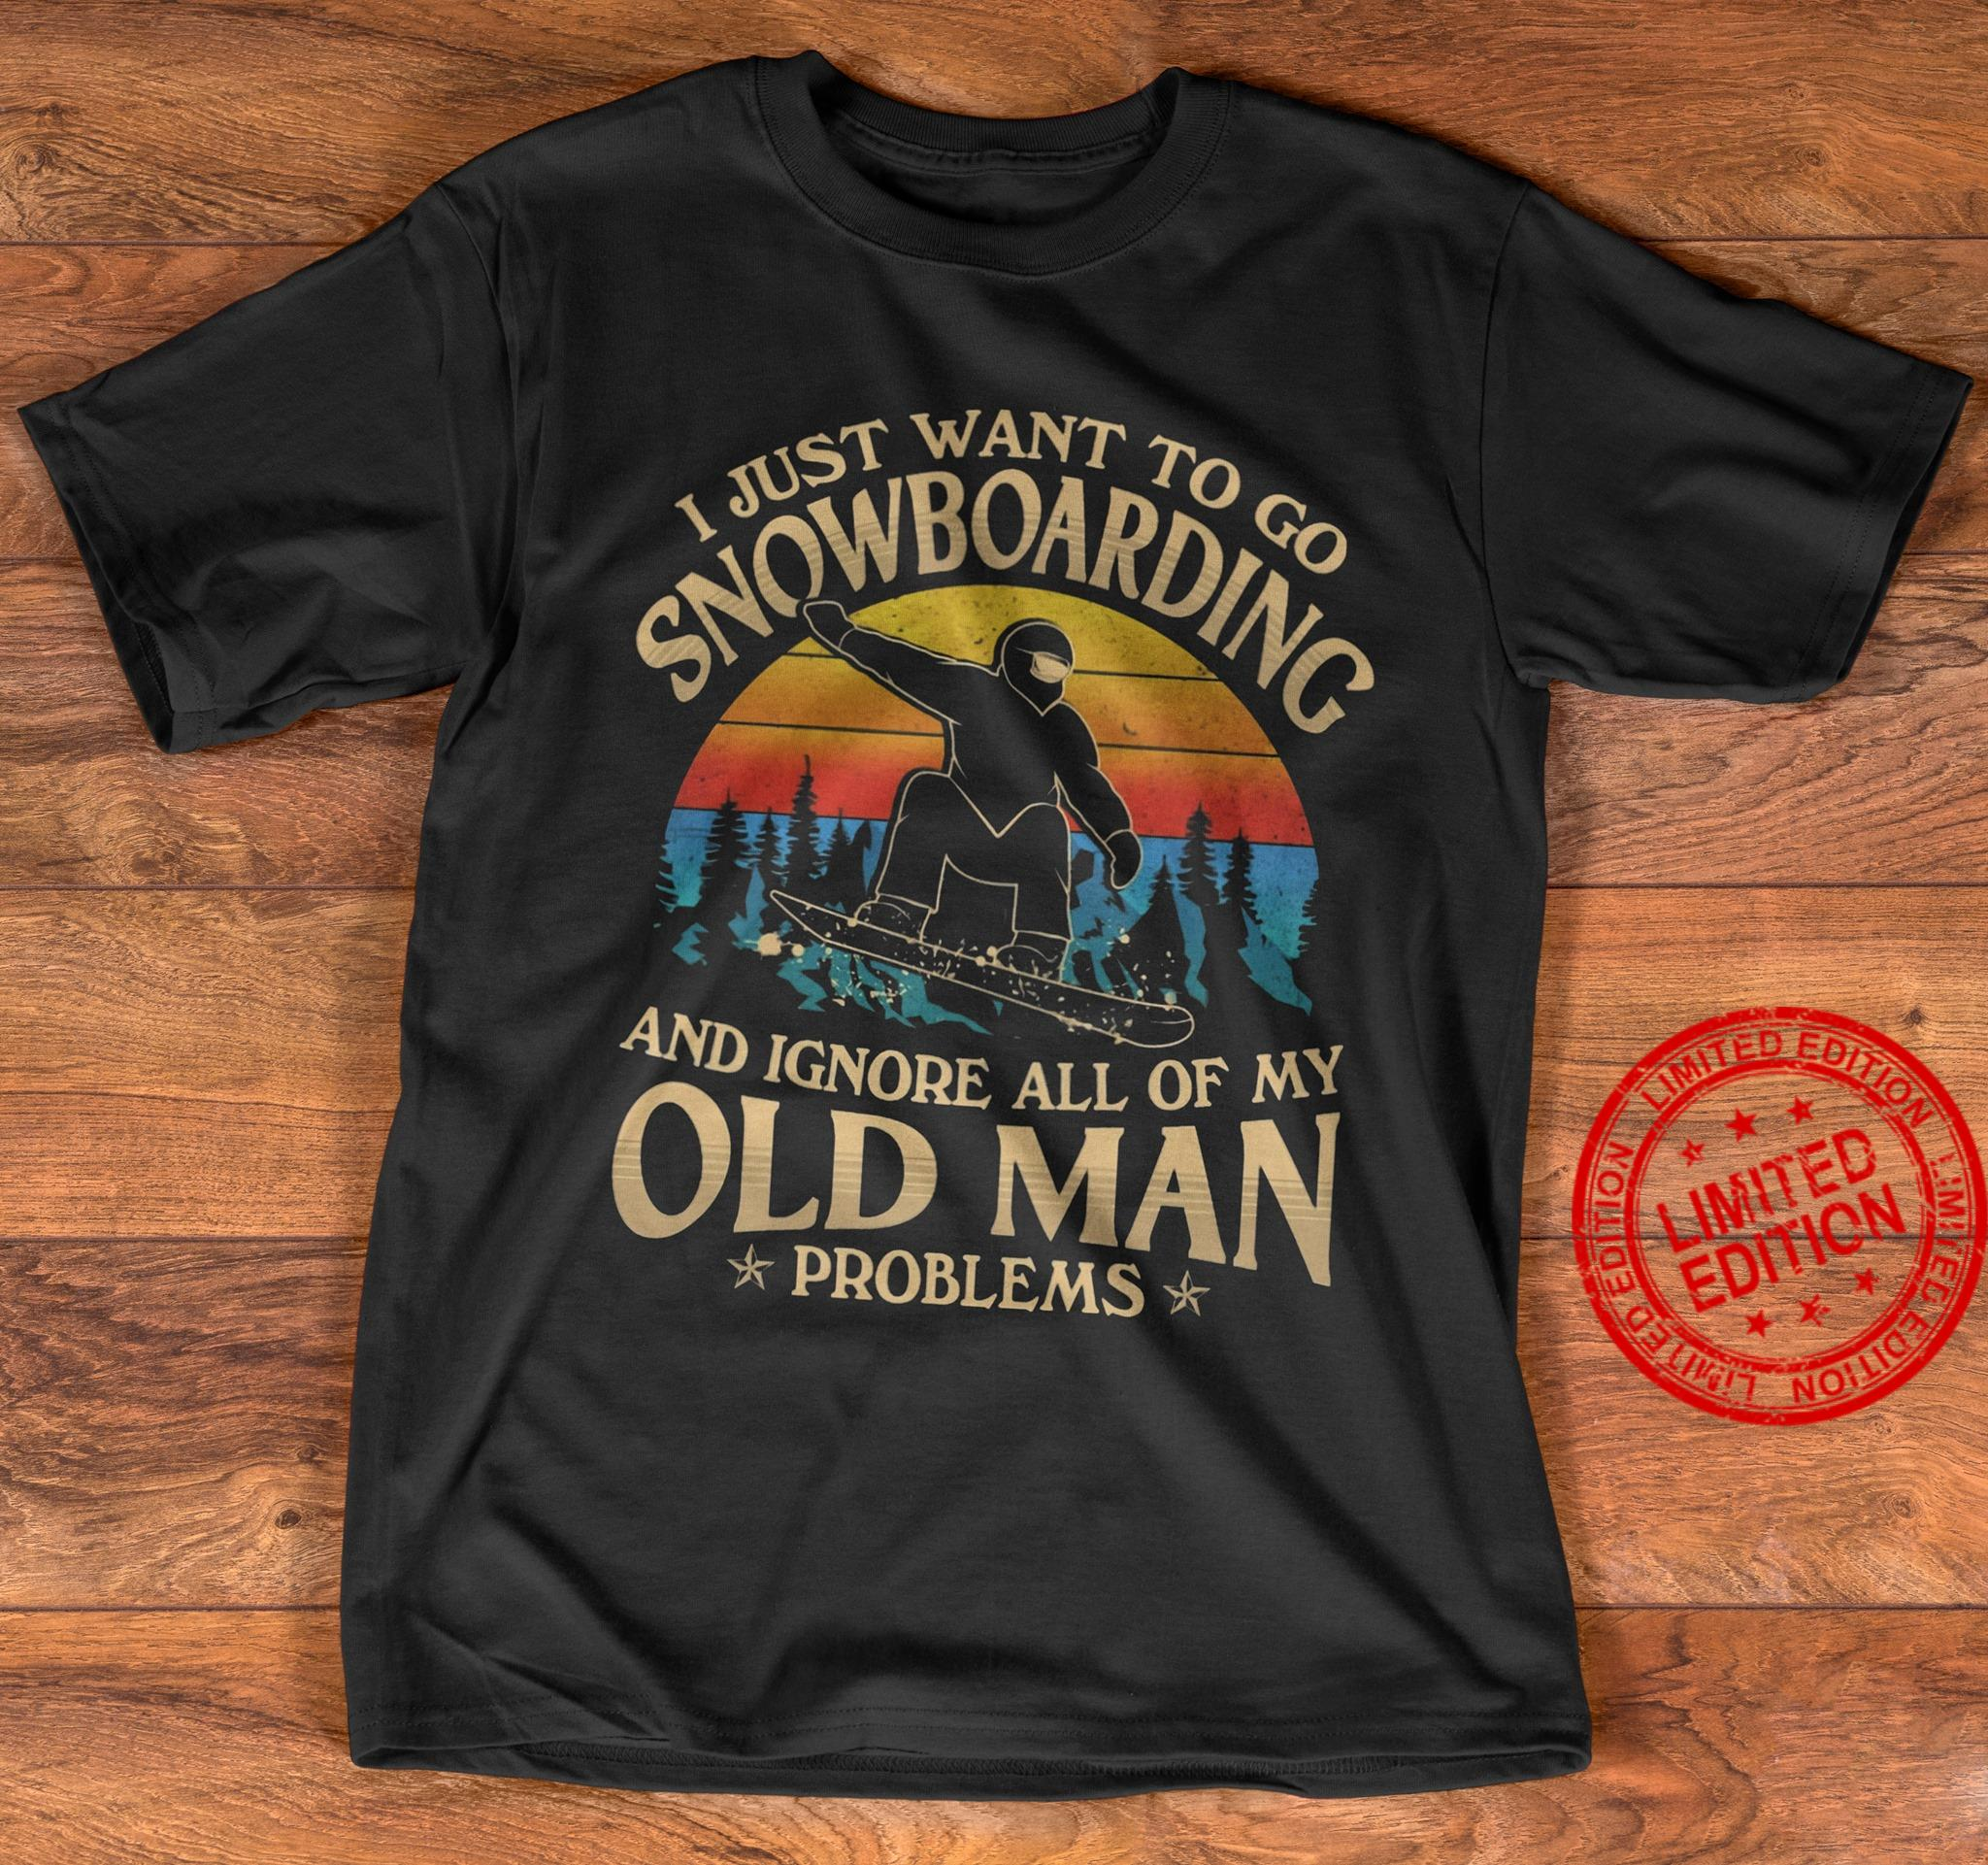 I Just Want To Go Snowboarding And Ignore All Of My Old Man Shirt